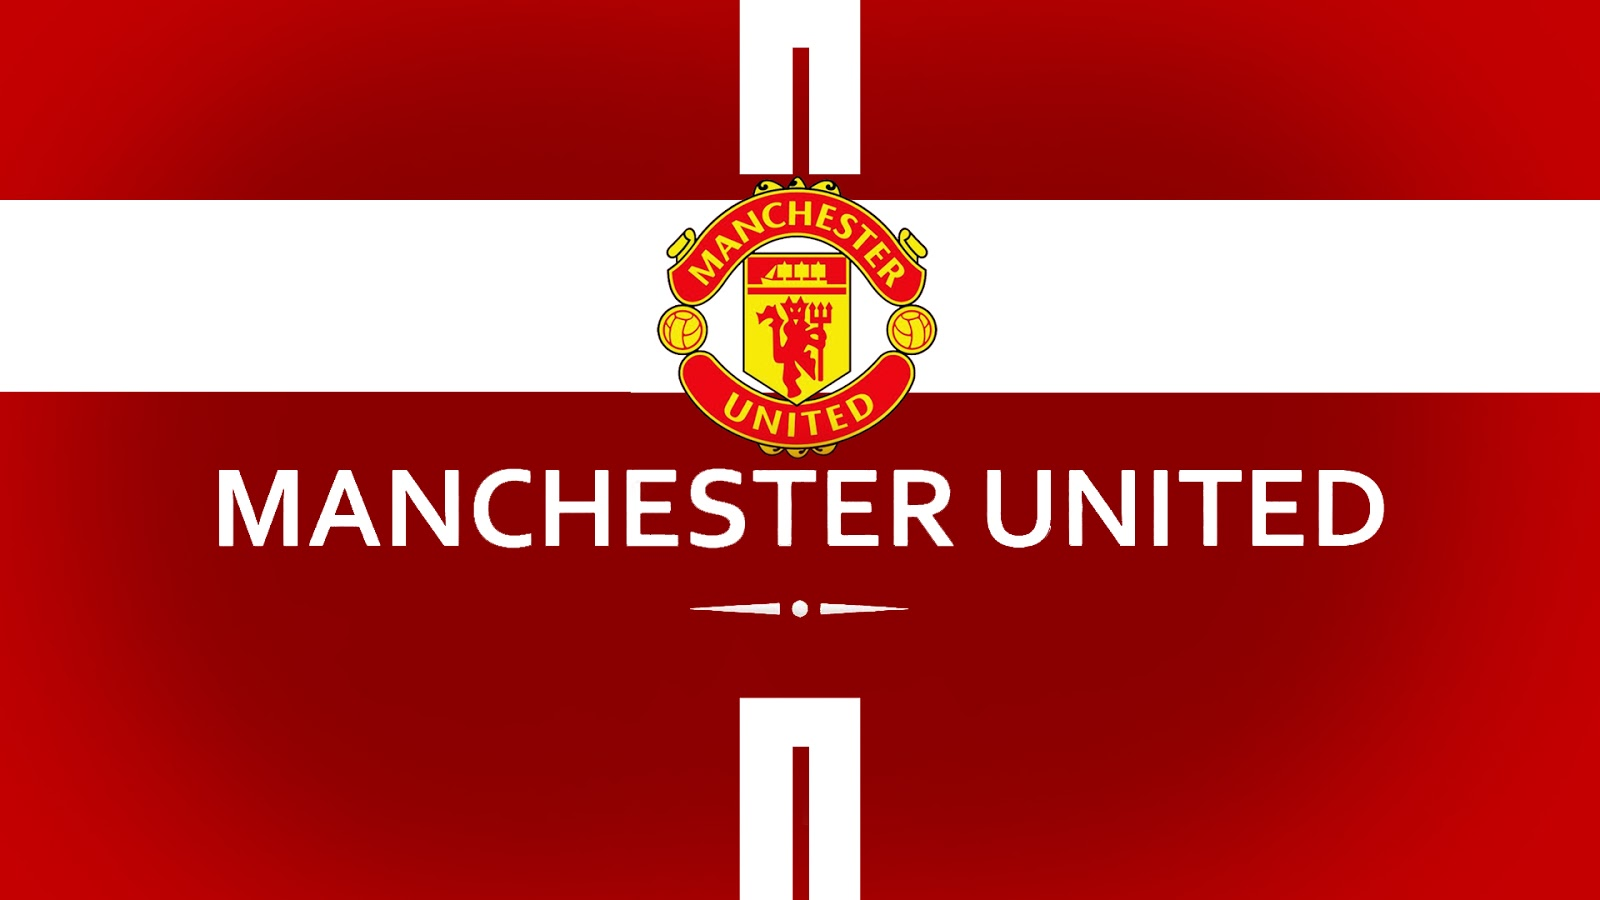 Manchester United 2013 Wallpapers 2013 HD